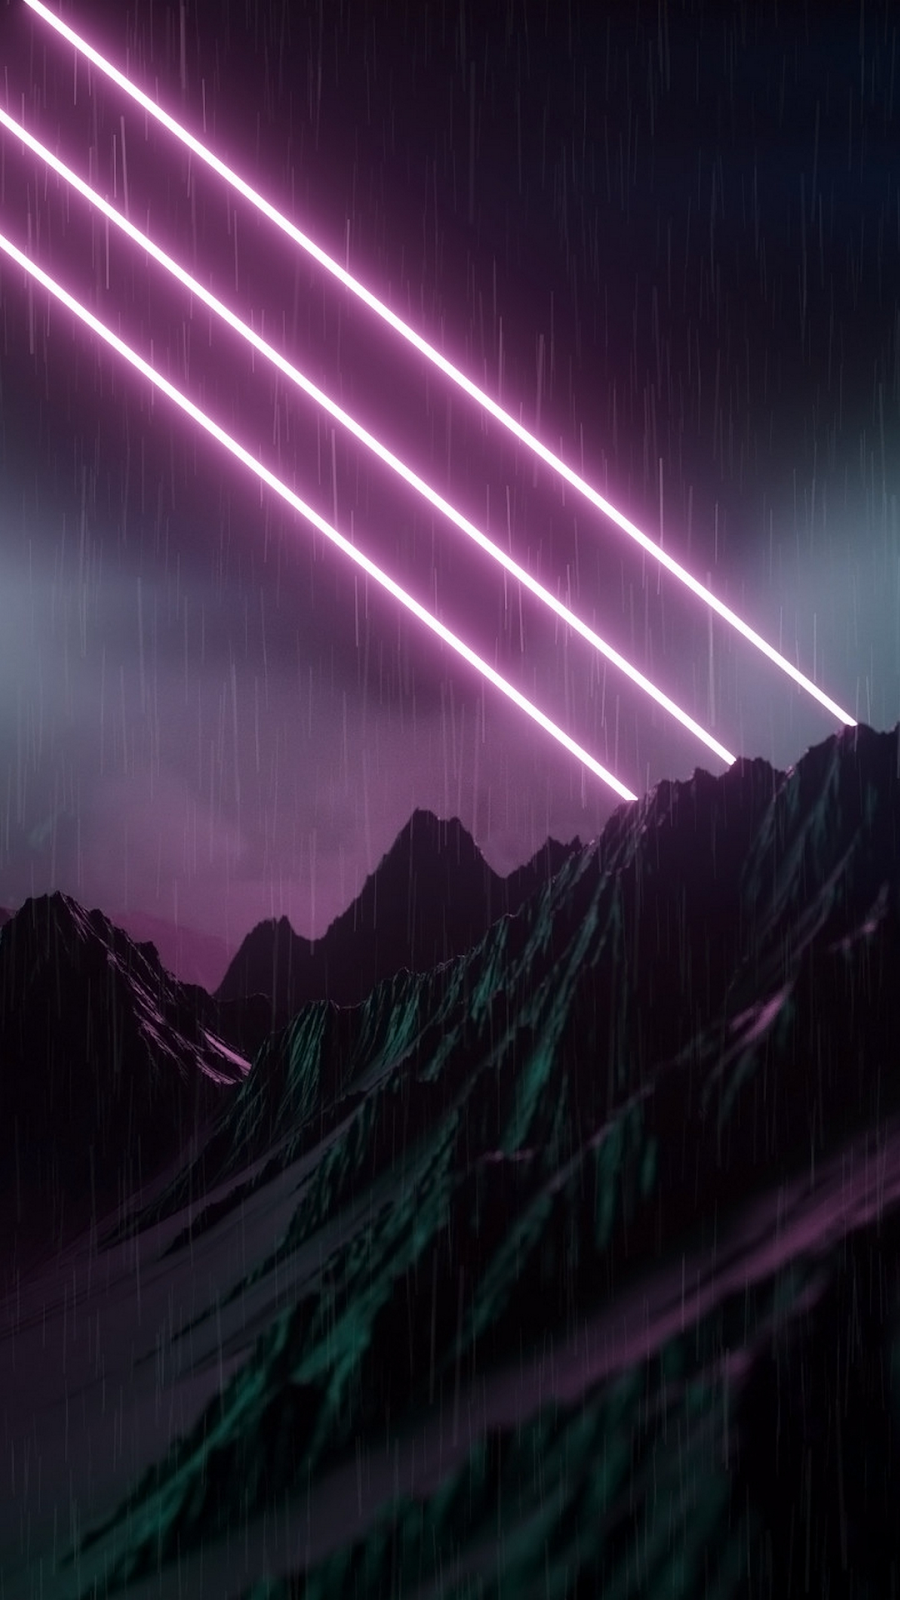 Aesthesic Vaporwave Wallpaper For Iphone Or Android Vaporwave Mobile Wallpaper Android 3109410 Hd Wallpaper Backgrounds Download